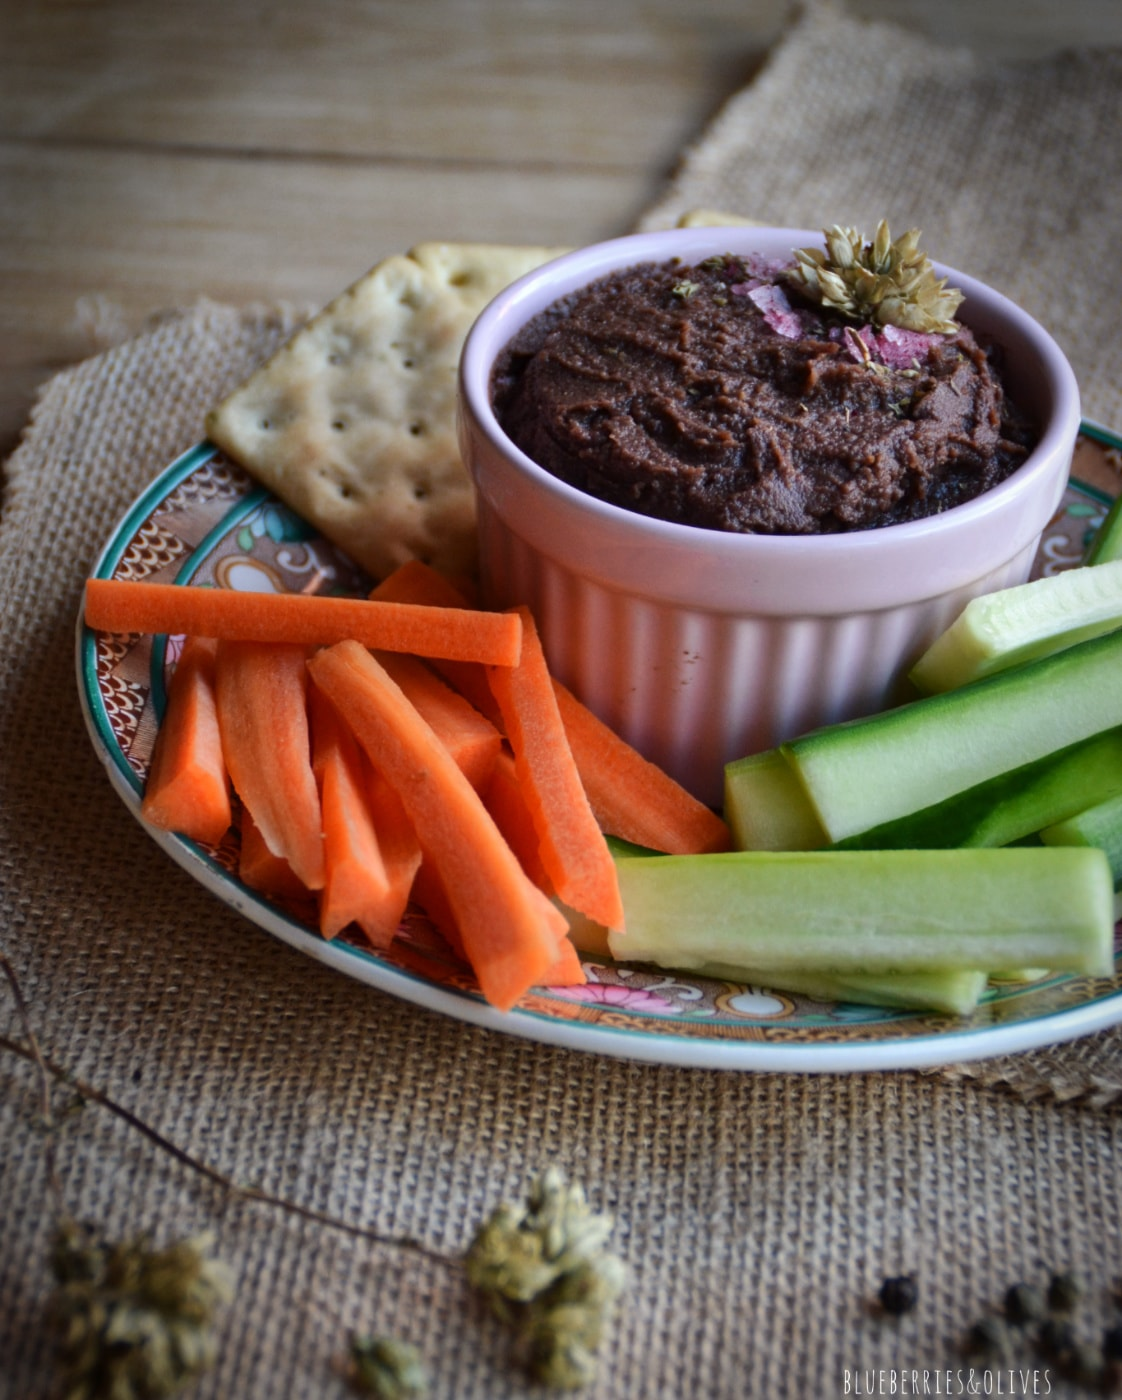 vegetable spread in pink bowl with crudités and a wood table with old tablecloth